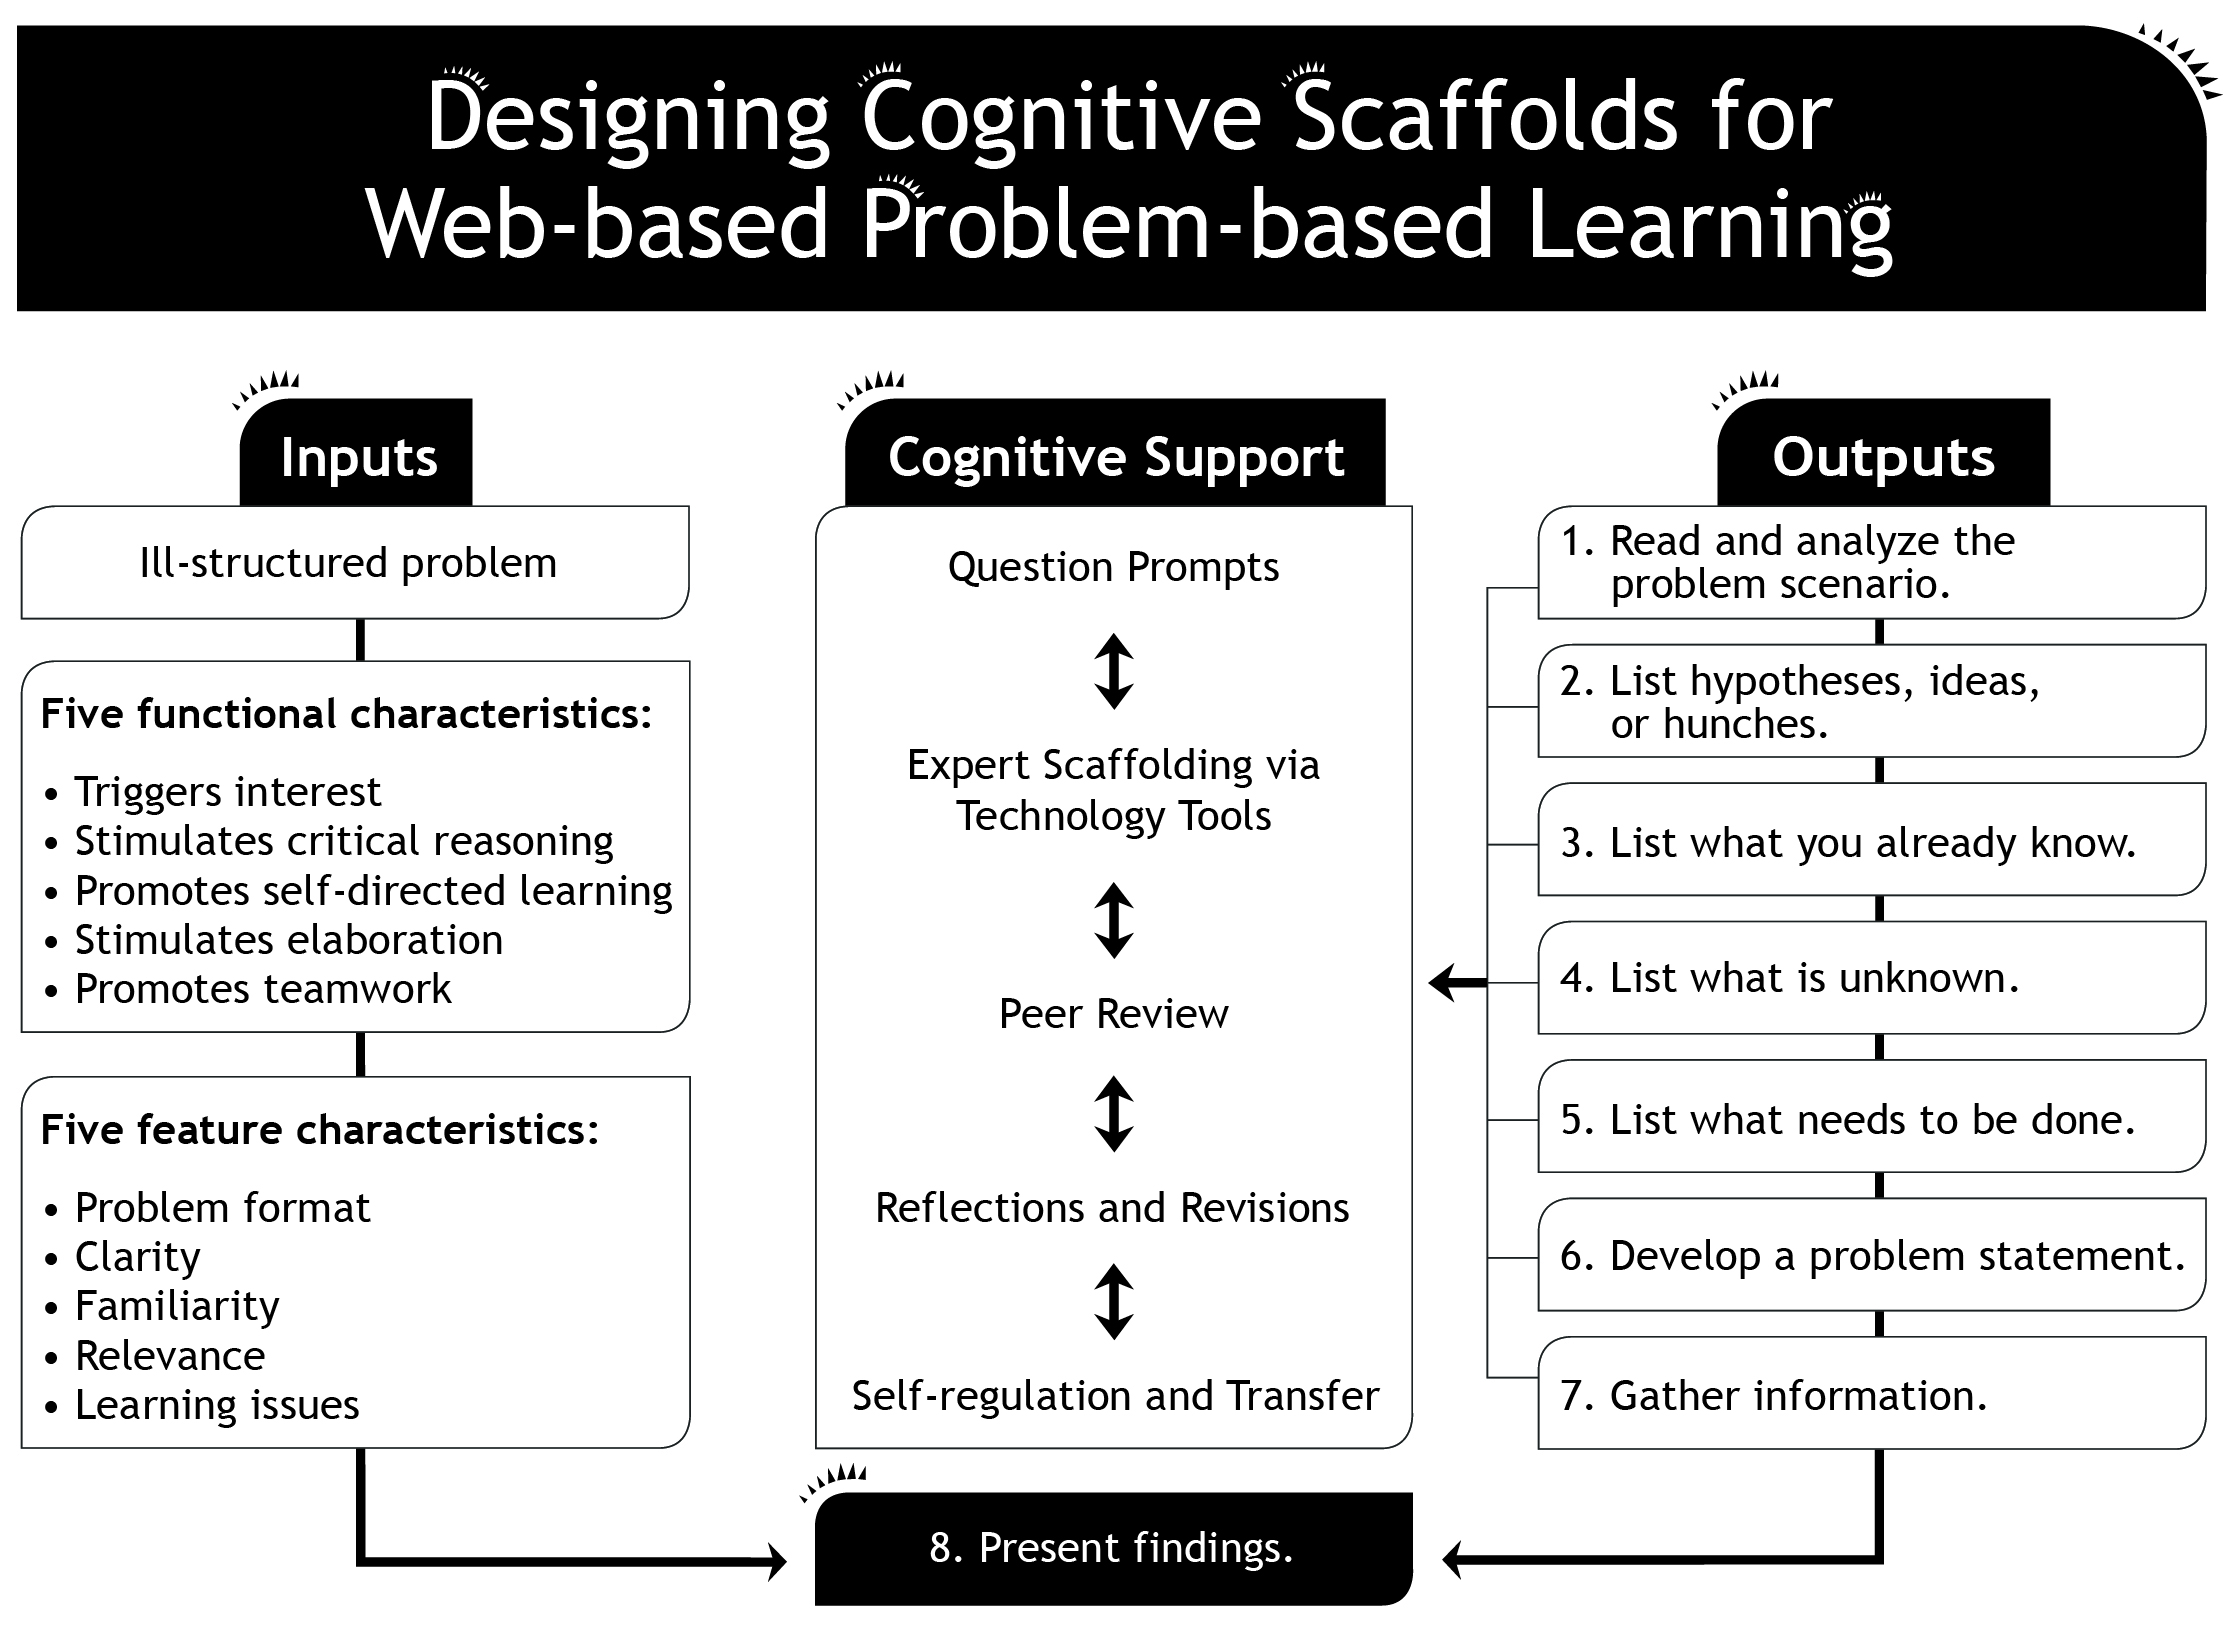 Designing cognitive scaffolds for Web-based Problem-based Learning